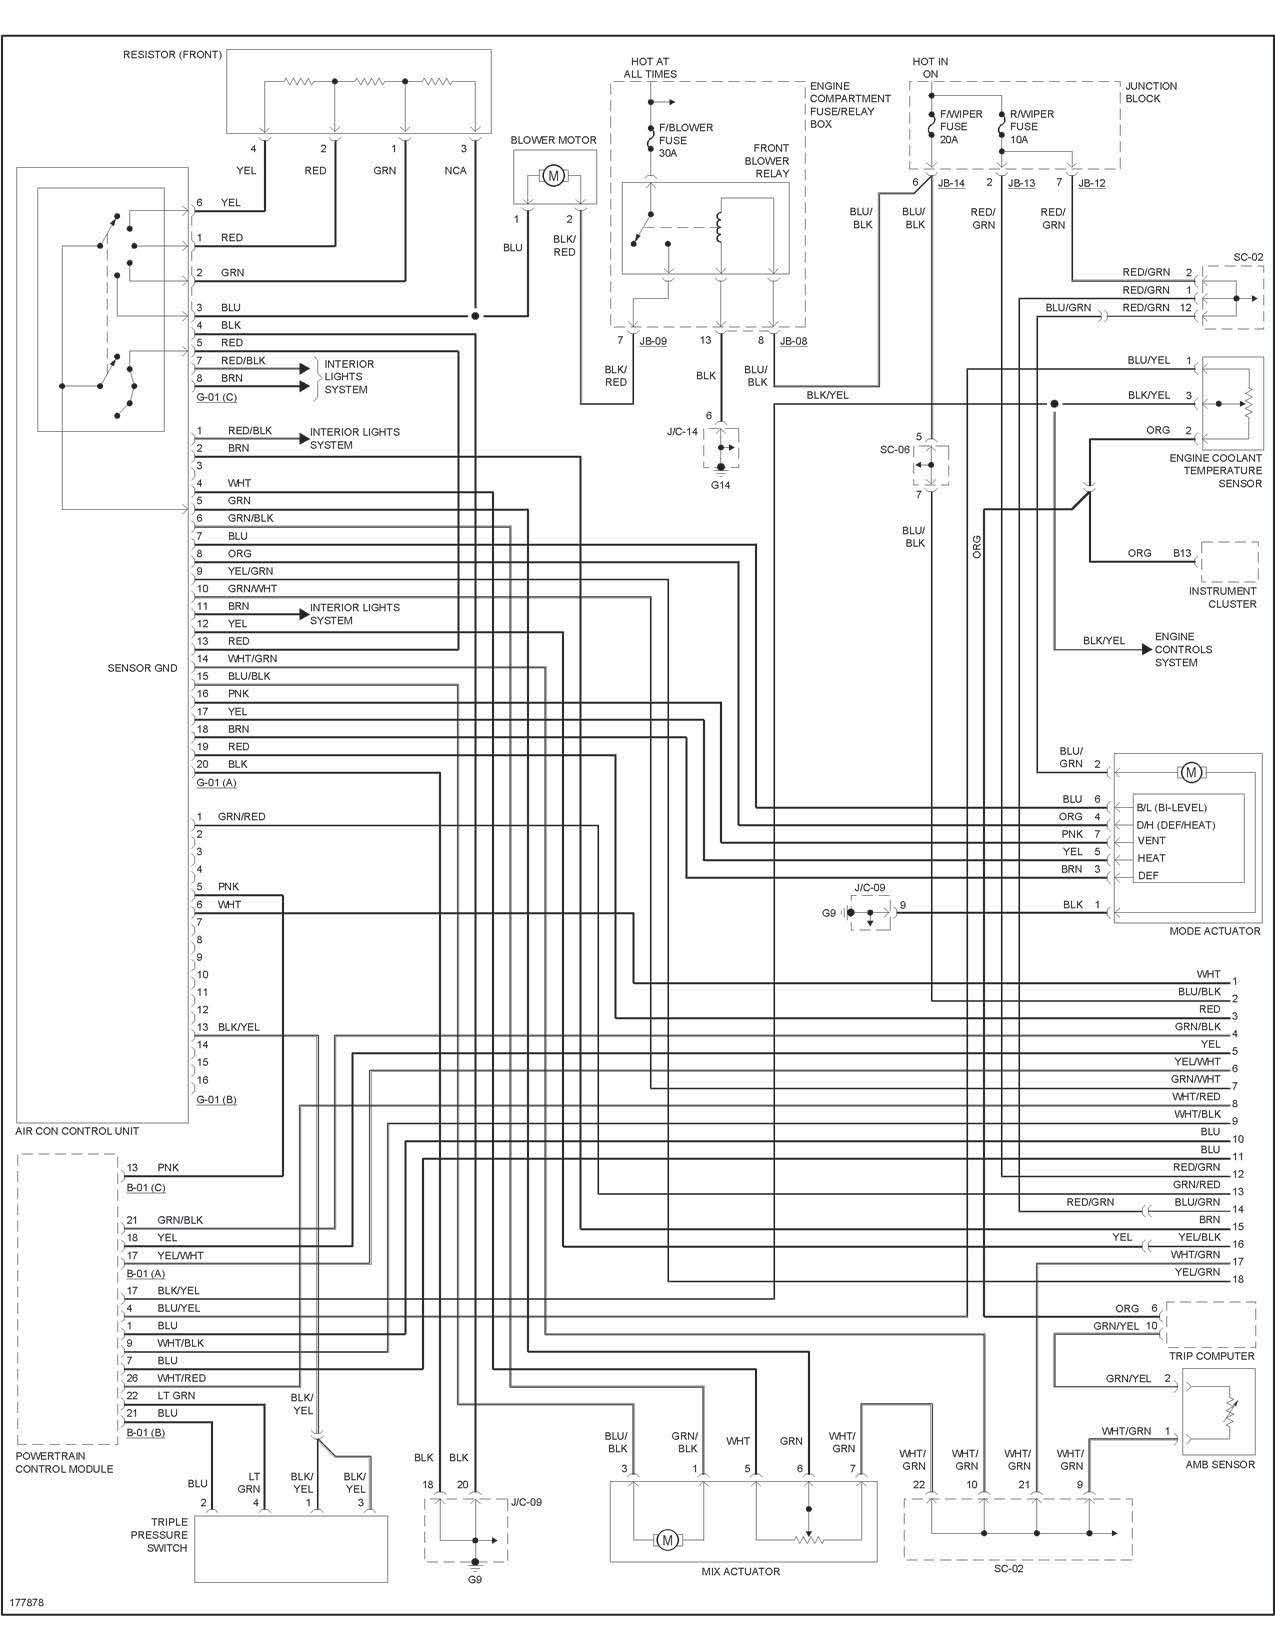 Wiring Diagram 2001 Kia Rio 1979 Chevy Truck Fuse Box Diagram For Wiring Diagram Schematics